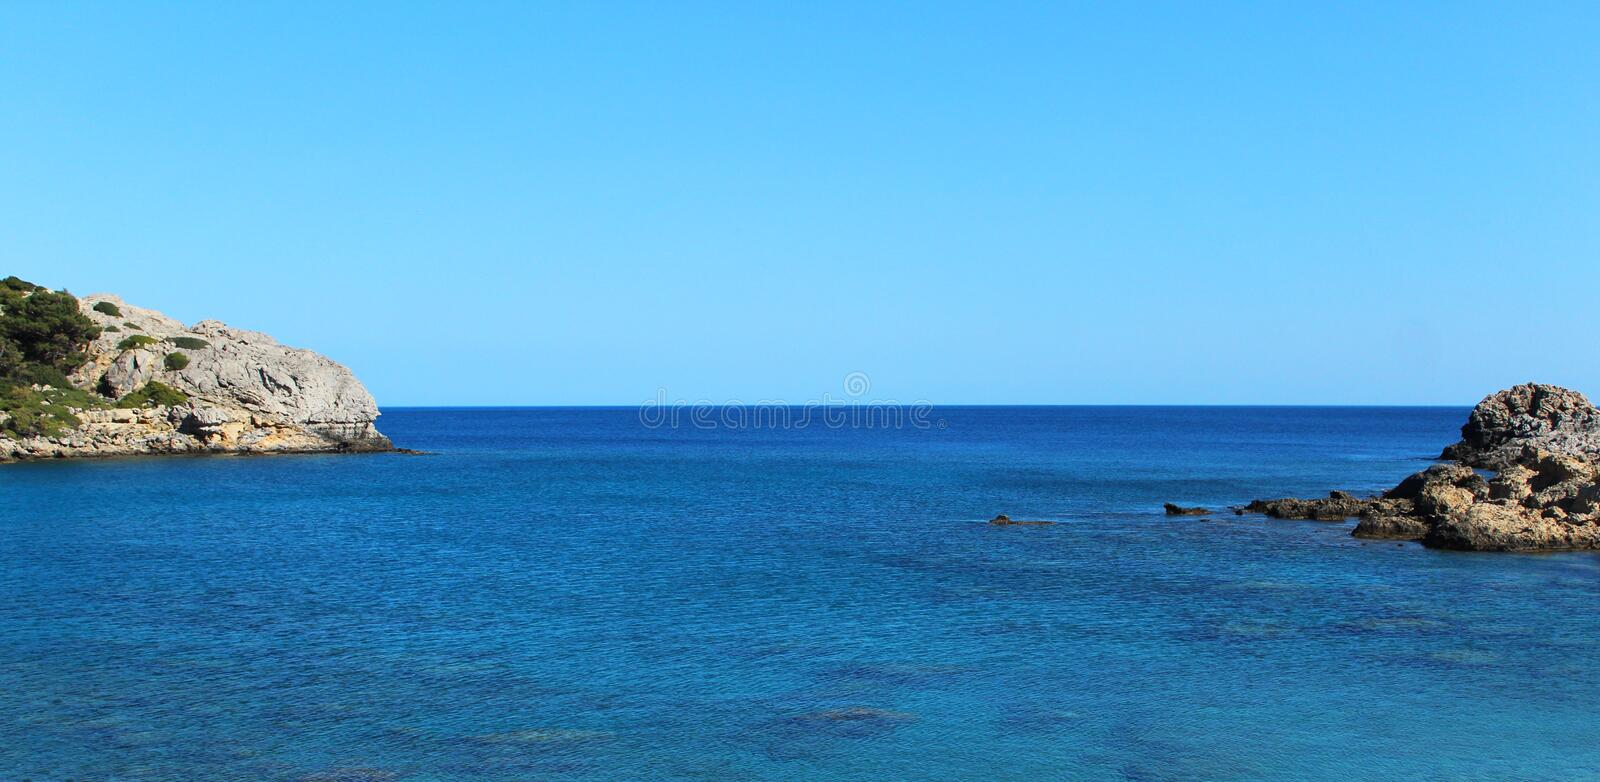 Scenic seascape - Rhodes island, Greece stock photo